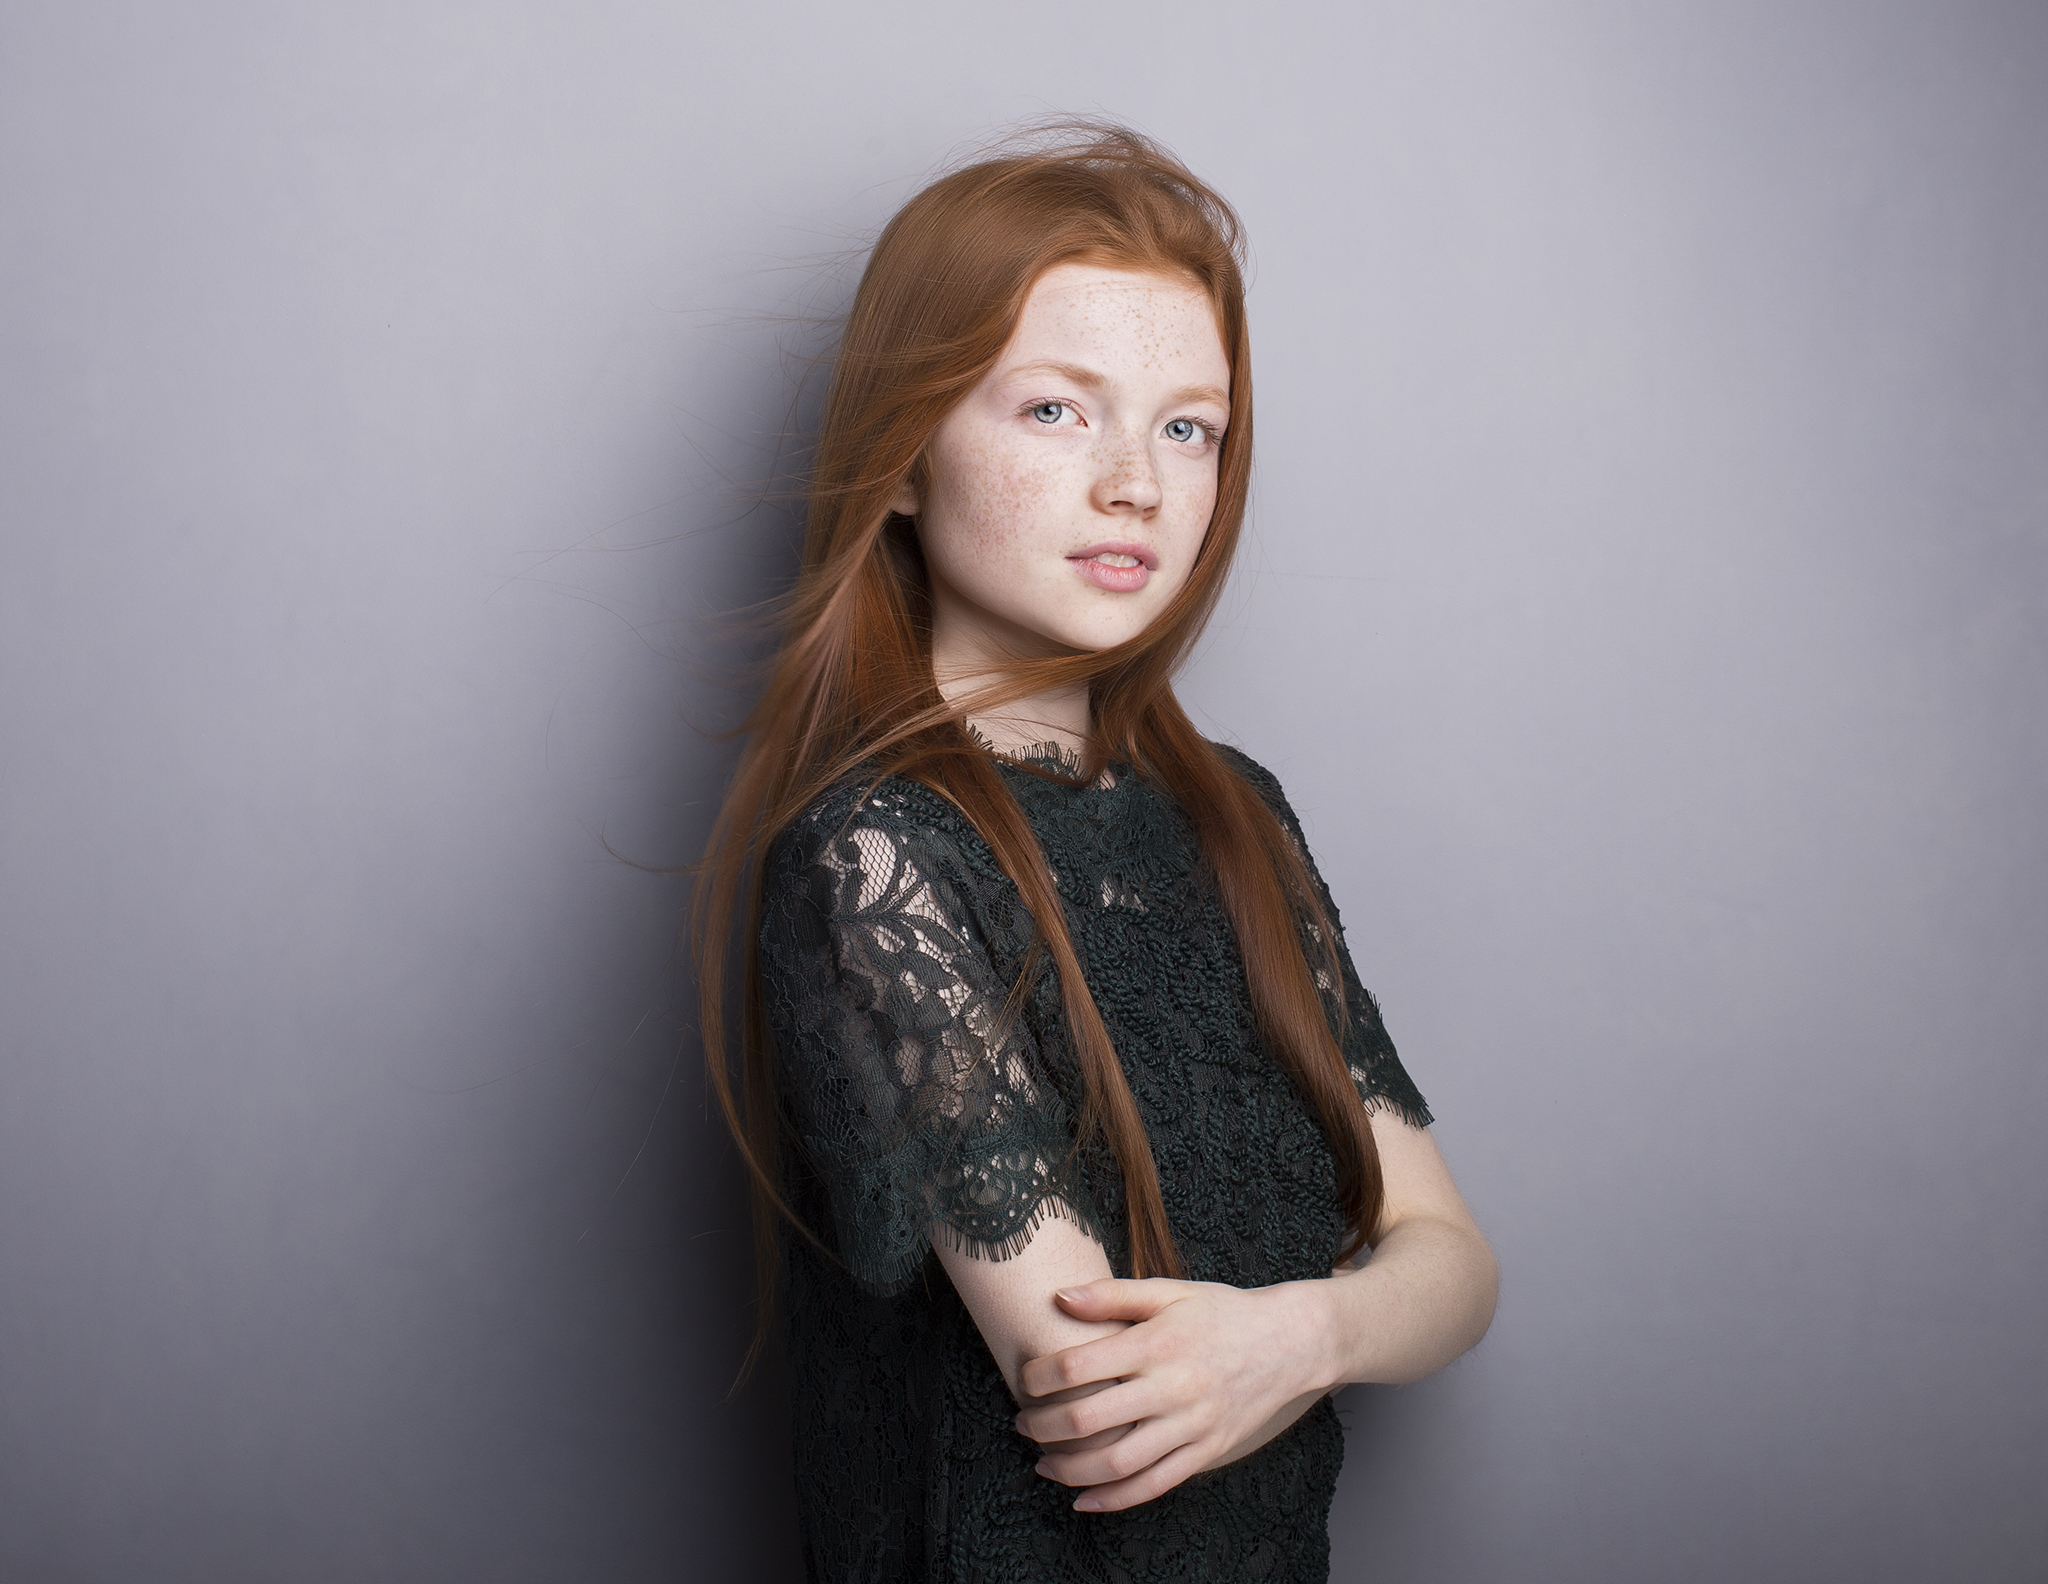 Elizabethg_fineart_portrait_photography_esme_kidslondon_model_agency_002.jpg